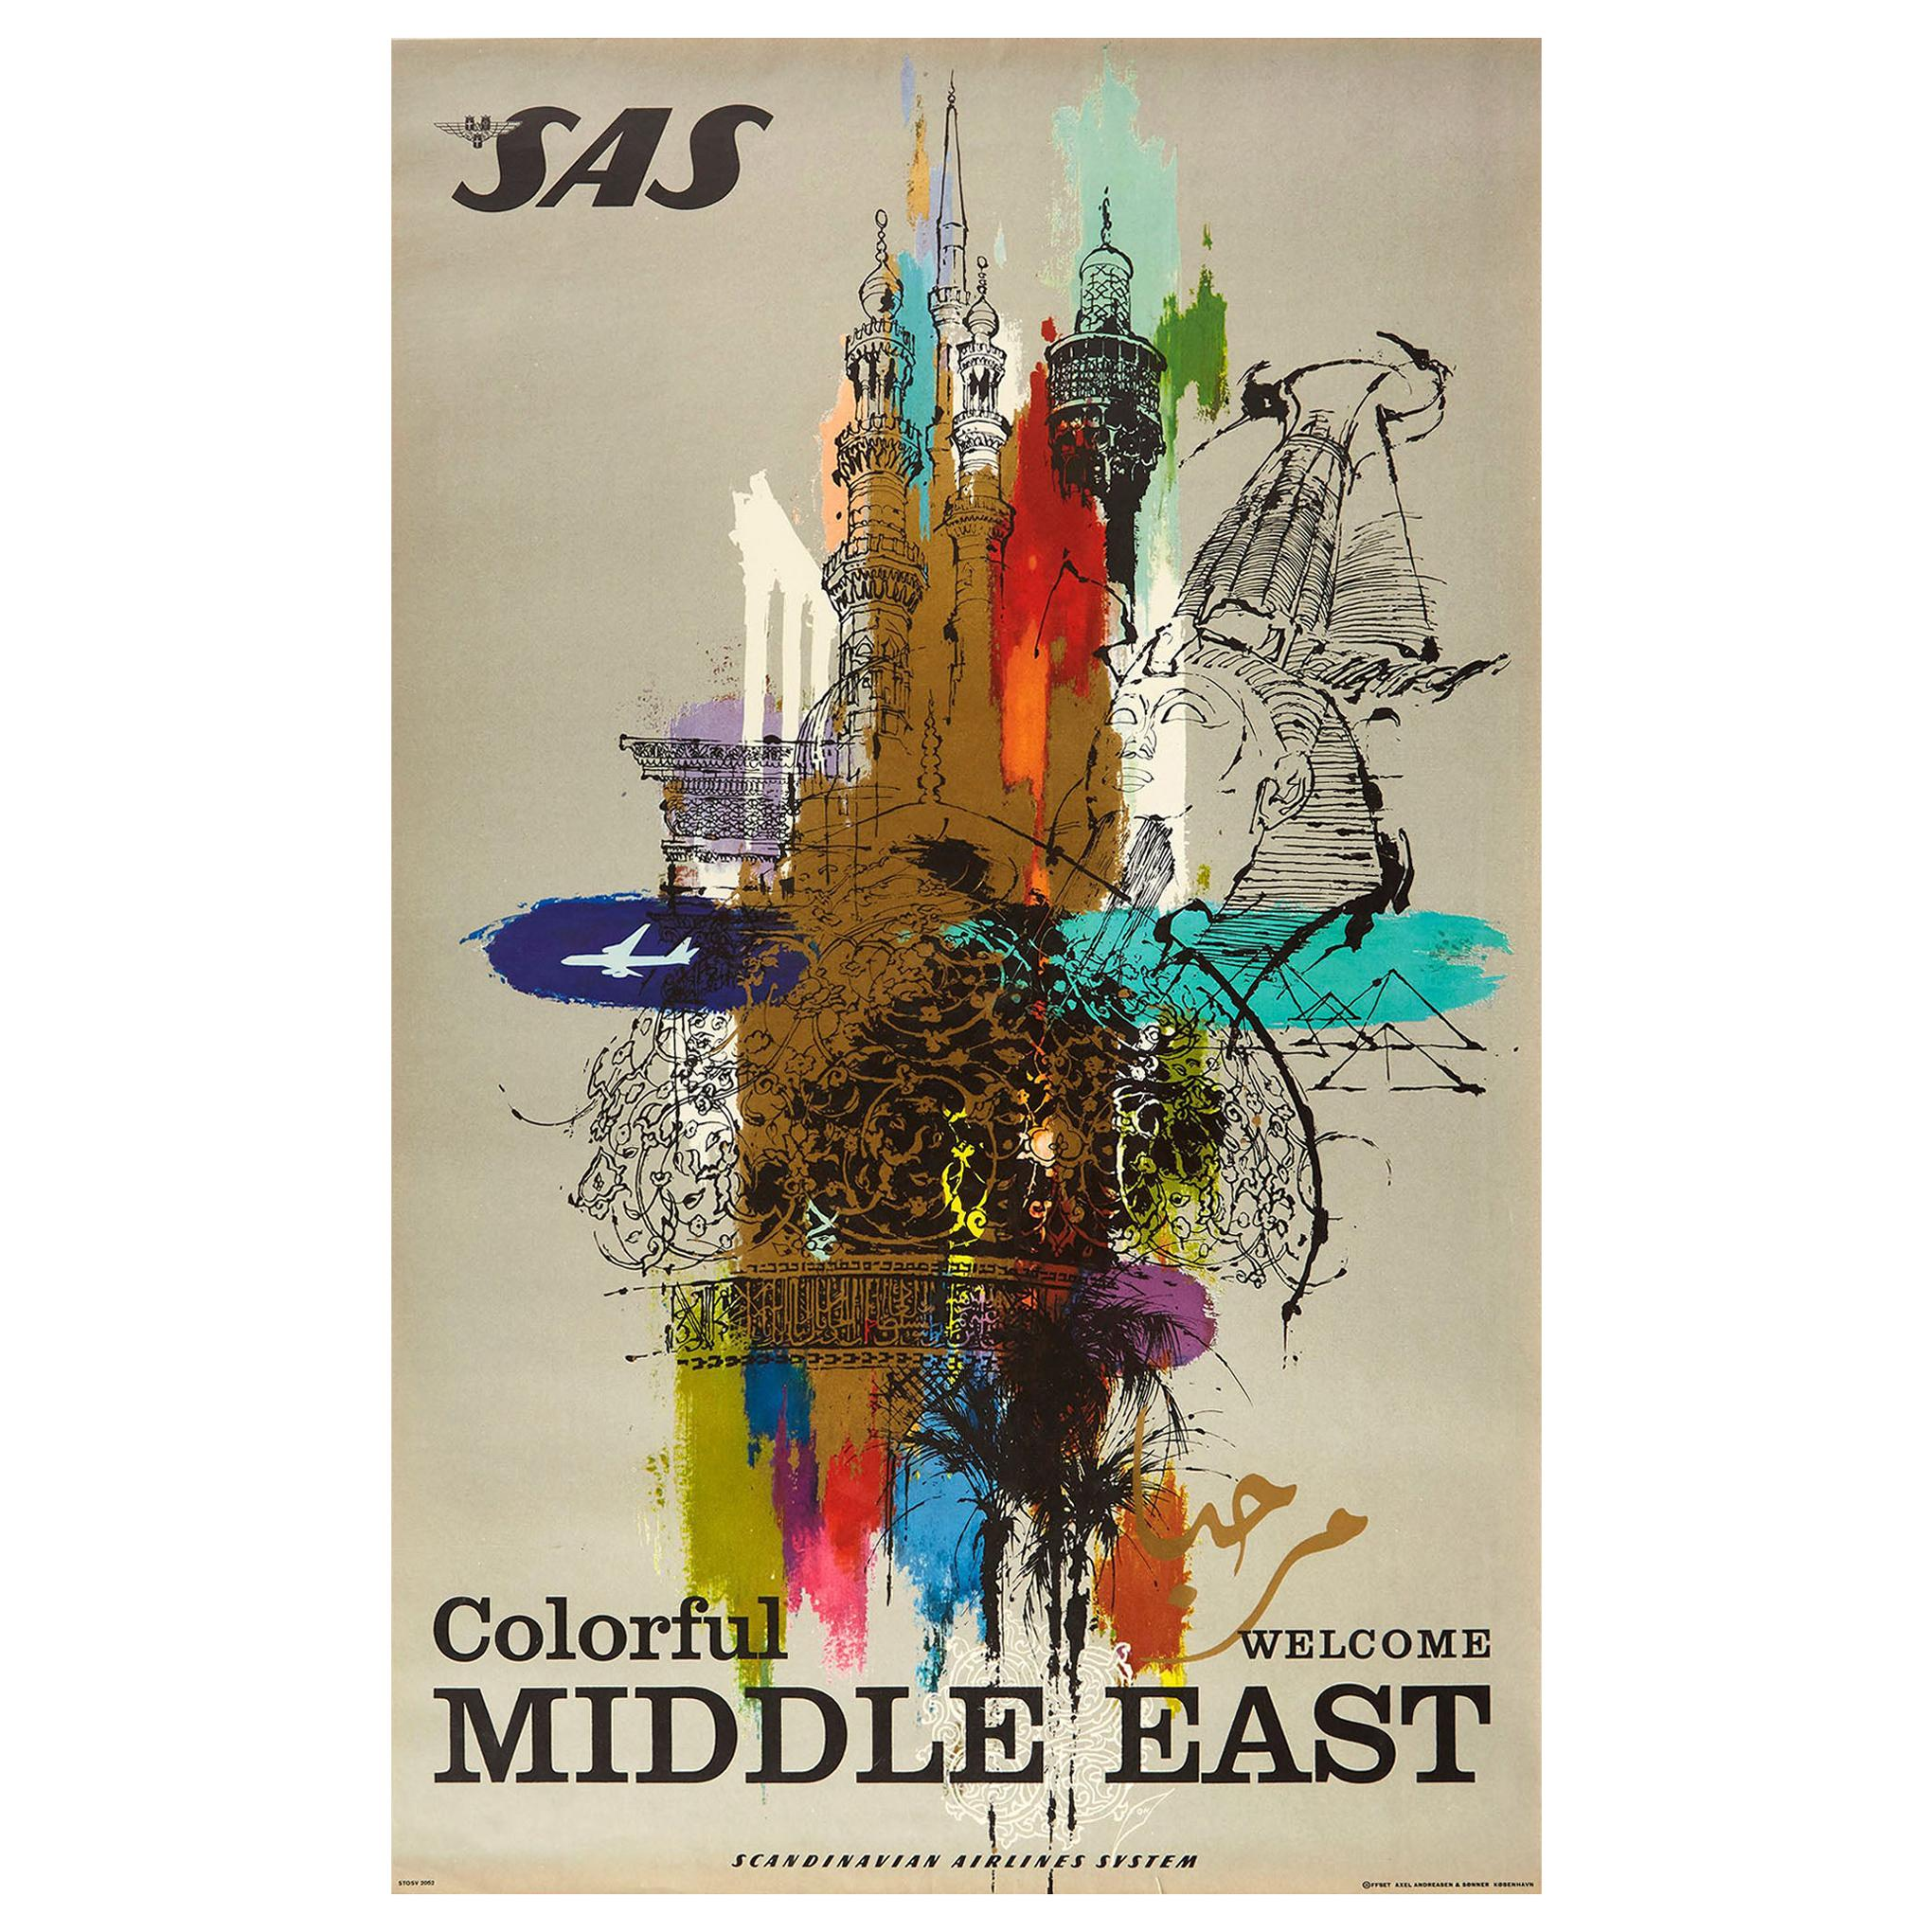 Original Vintage Poster Colorful Middle East SAS Airline Travel Sphinx Pyramids